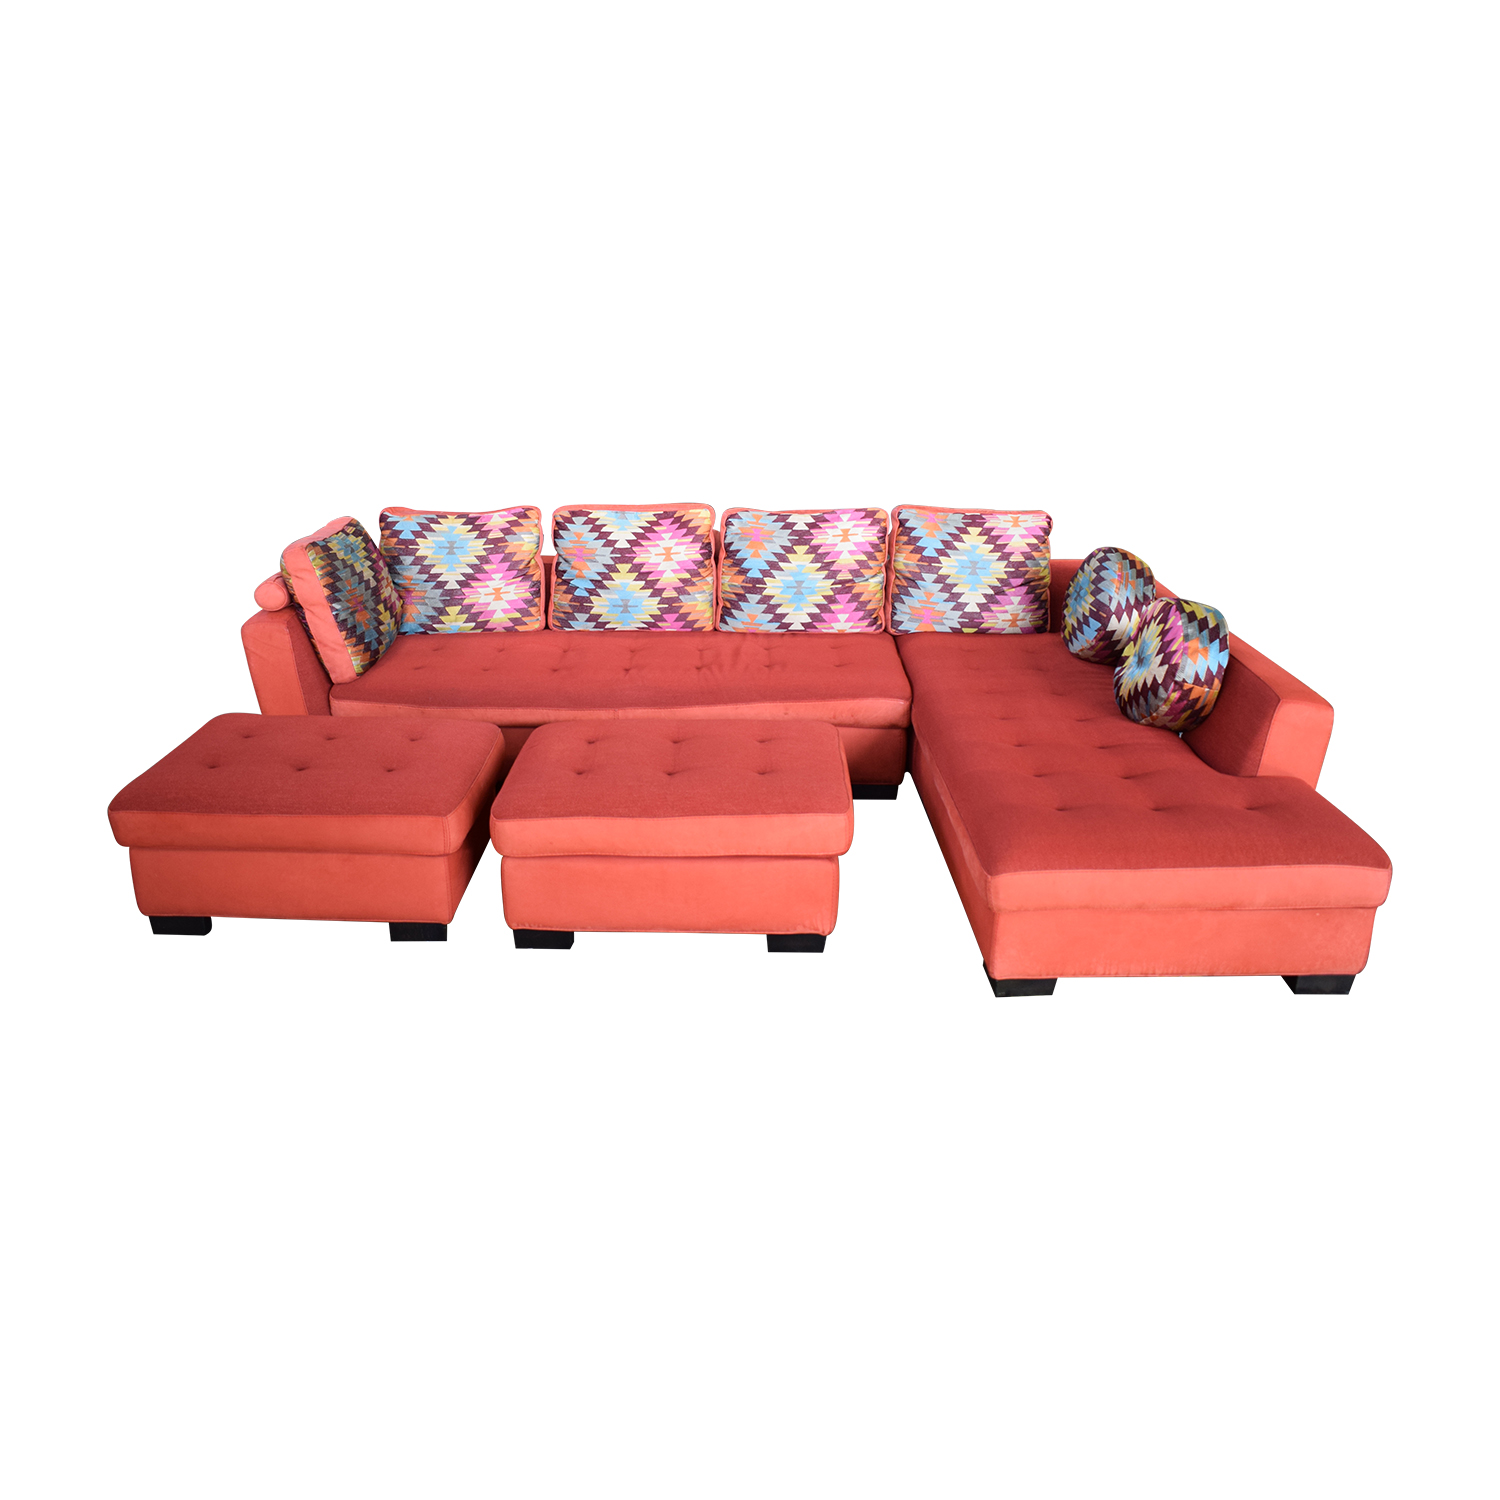 Maurice Villency Maurice Villency Sofa Sectional with Ottomans nj